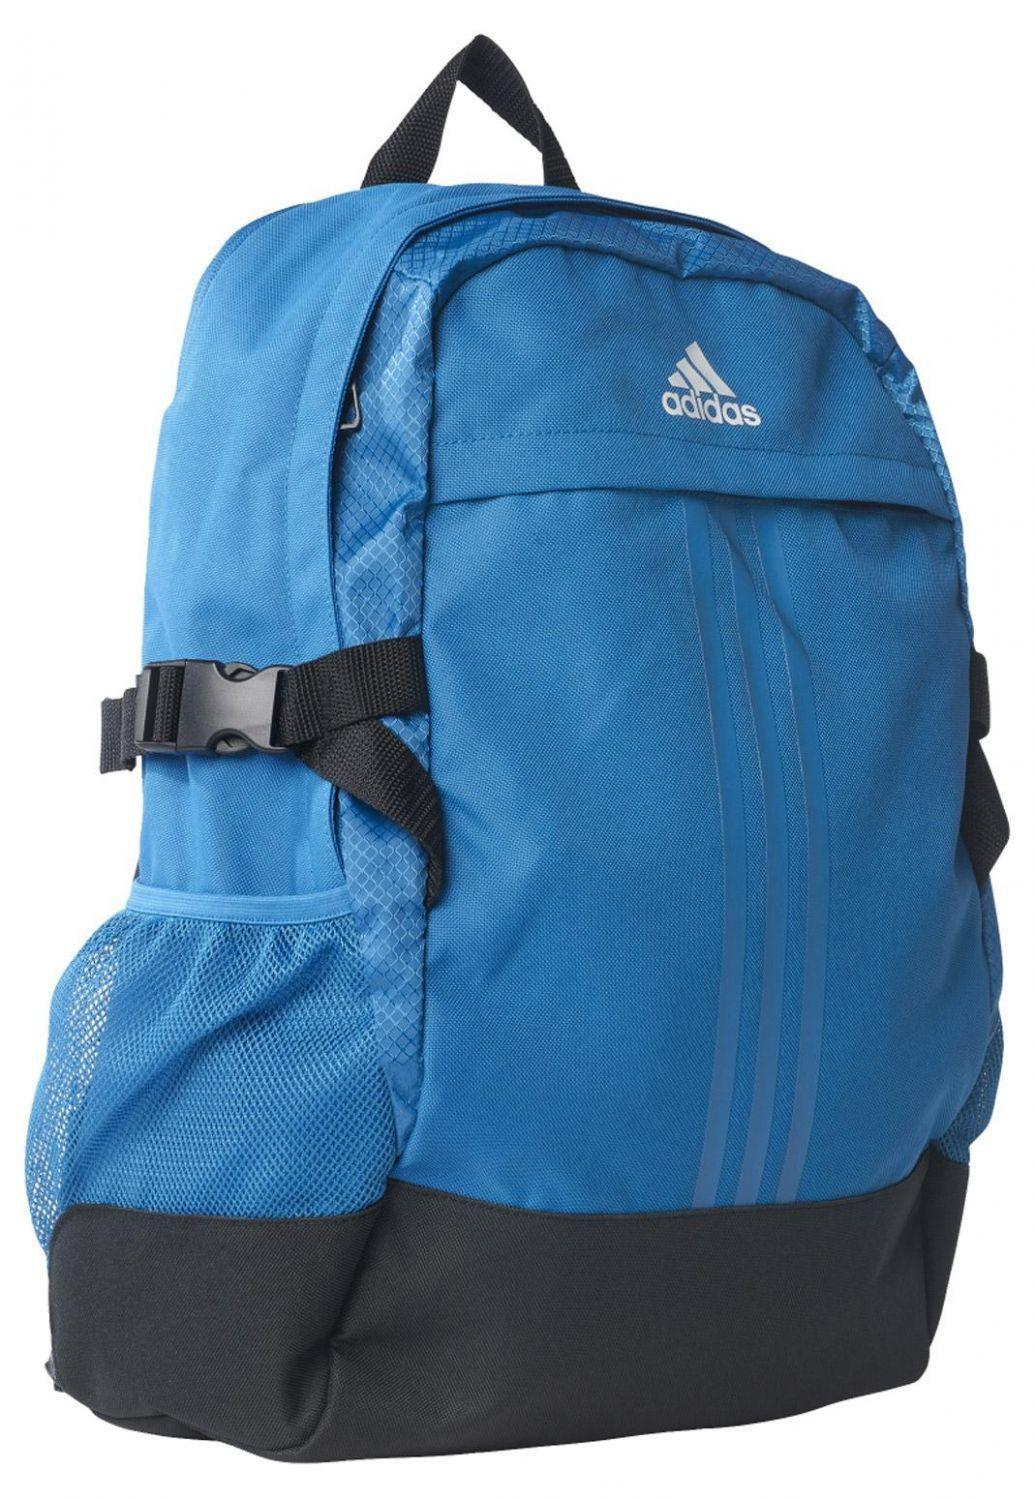 Image of adidas Backpack Power III M Tagesrucksack ( unity blue f16/unity blue f16/white)